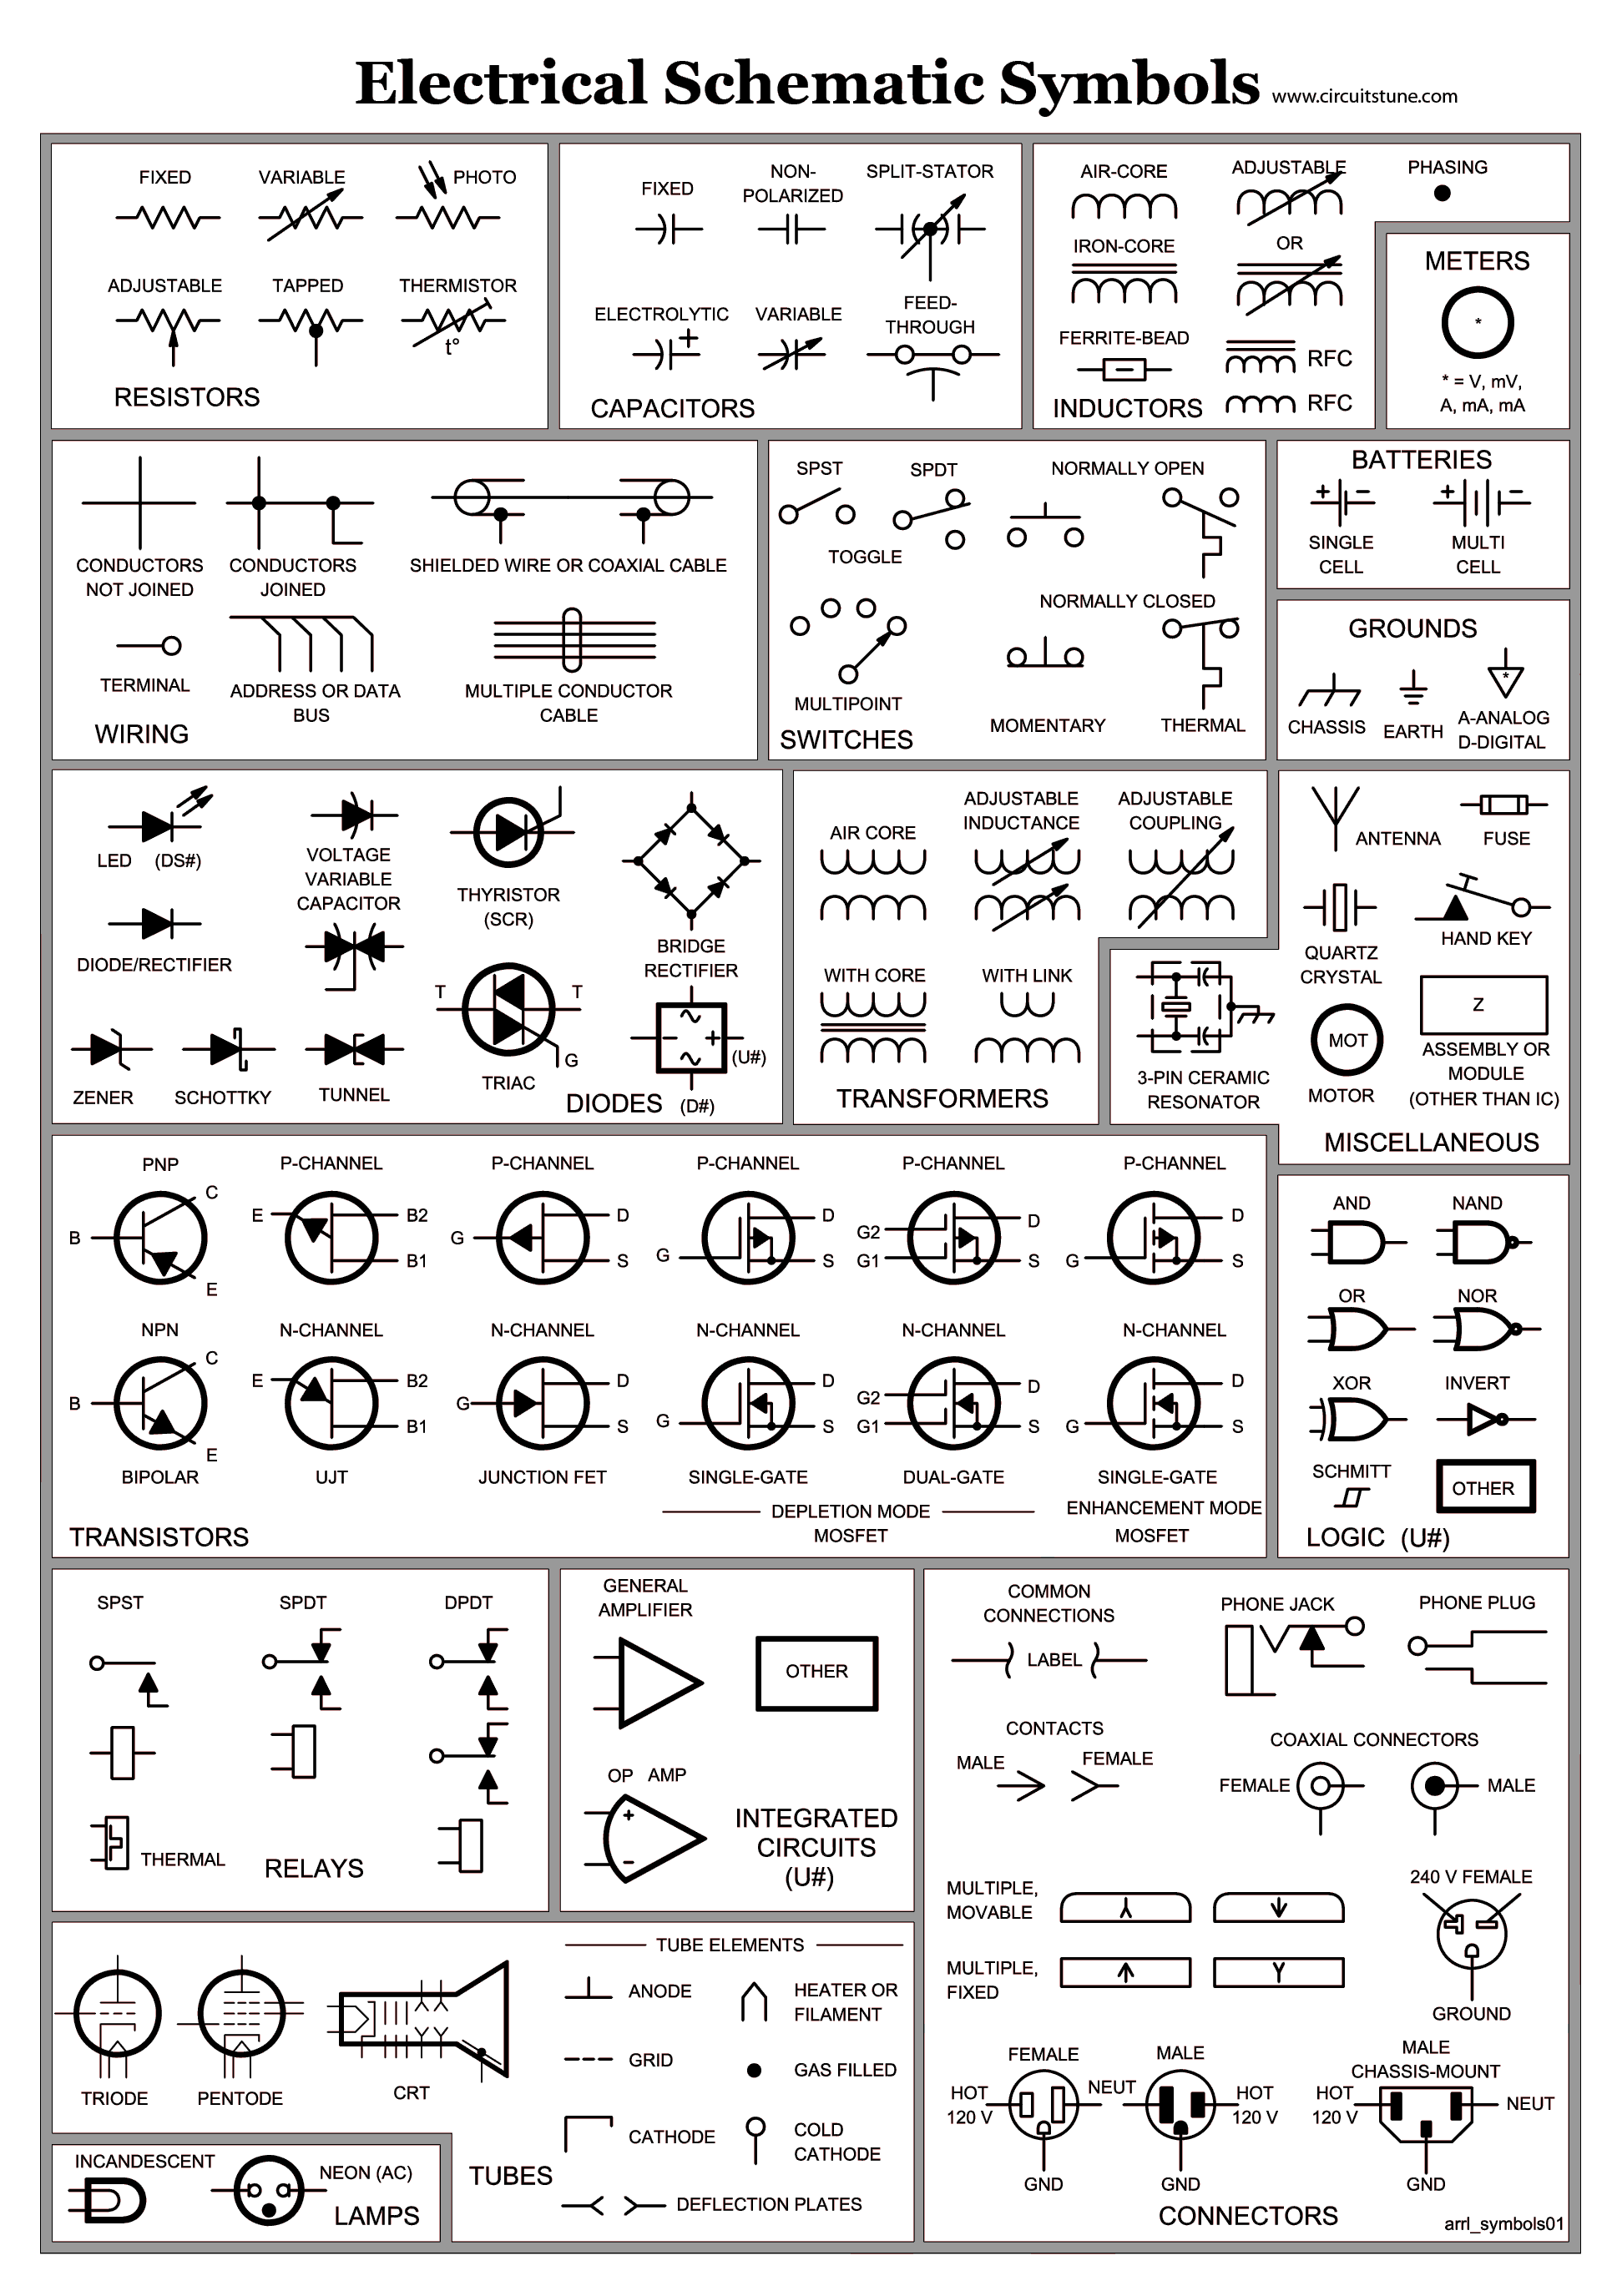 wiring diagram legend product wiring diagrams \u2022 encore boats wiring diagram electrical schematic symbols wire diagram symbols automotive wiring rh pinterest com automotive wiring diagram legend wiring diagram symbol